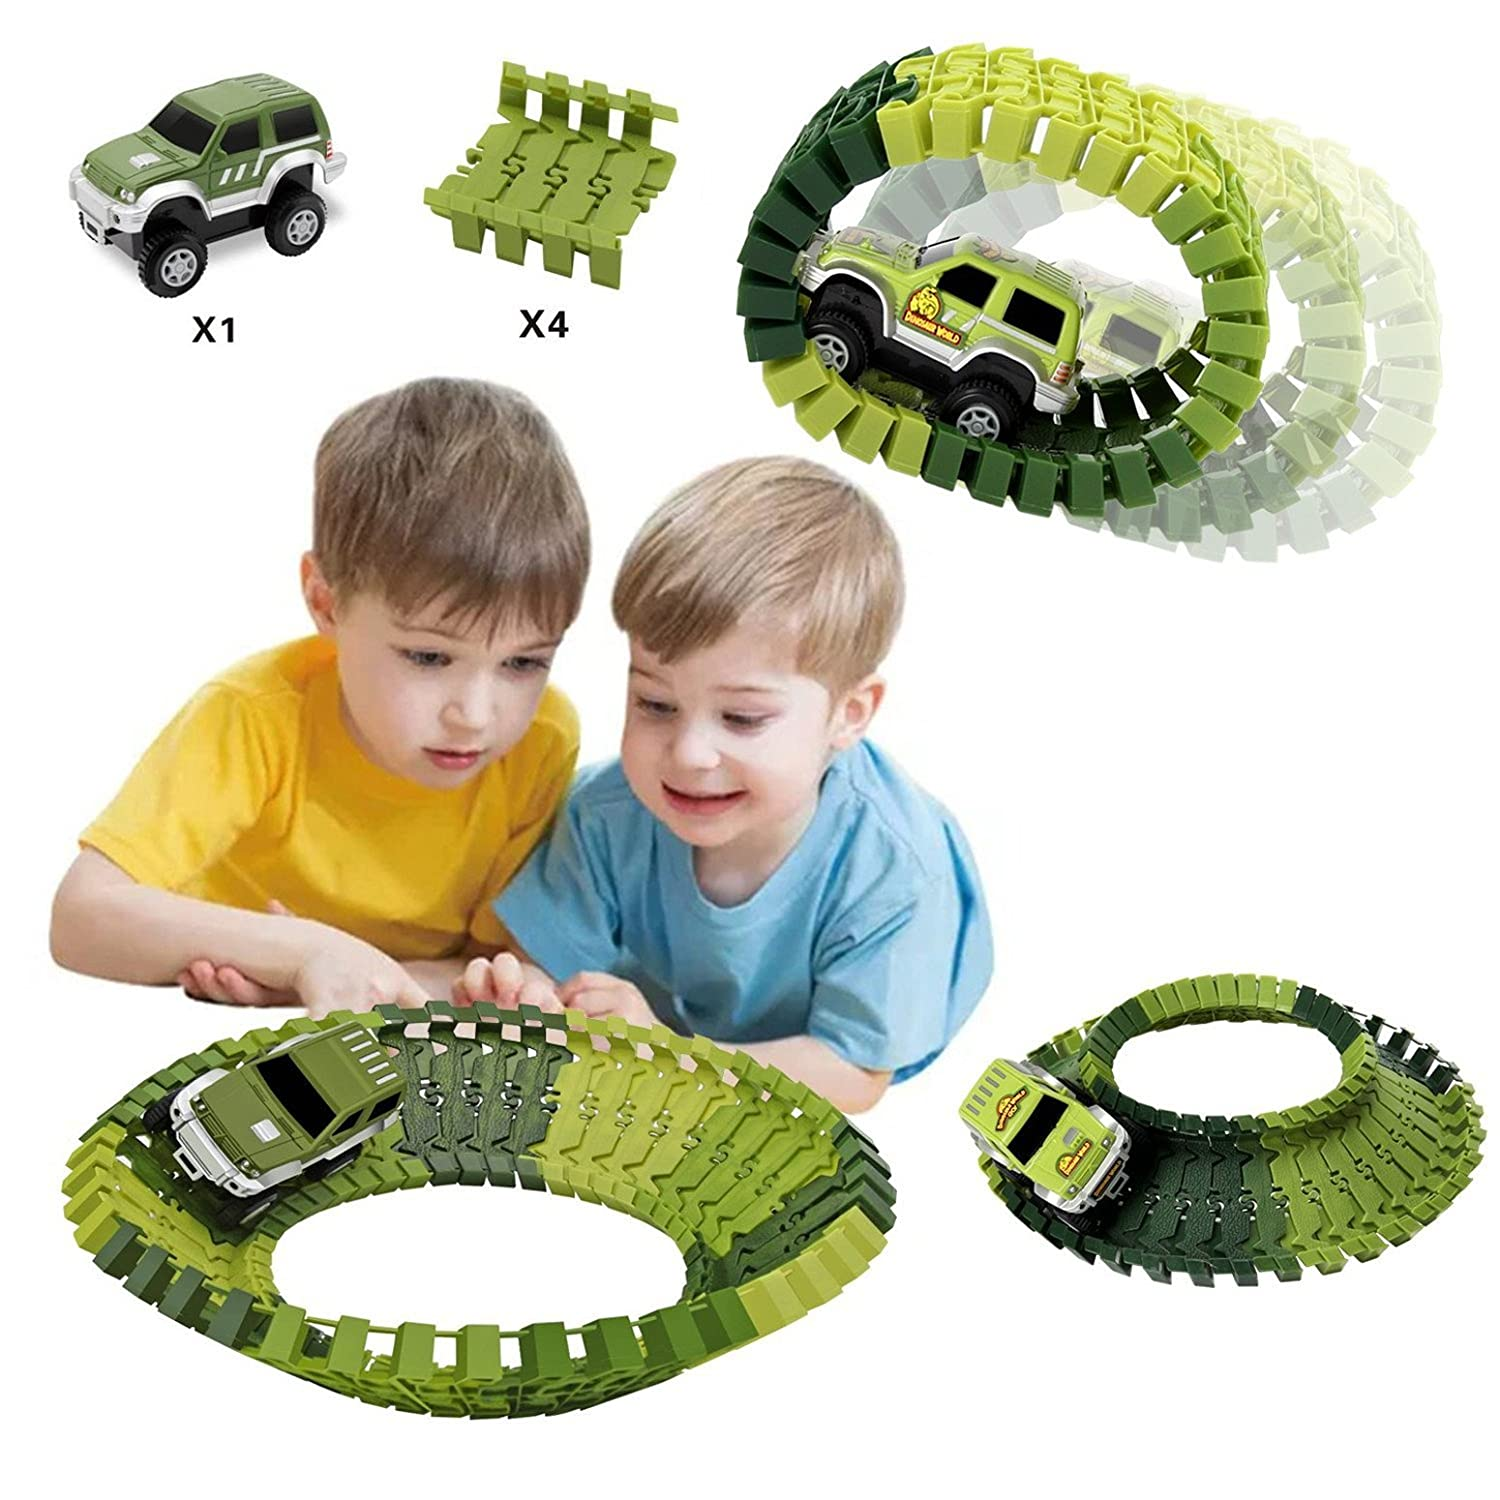 HOMOFY Dinosaur Toys Slot Car Race Sets Jurassic World with 142 Pieces Flexible Tracks 2 1 Military Vehicles,4 Trees,2 Slopes,1 Double-Door and 1 Hanging Bridge for Children